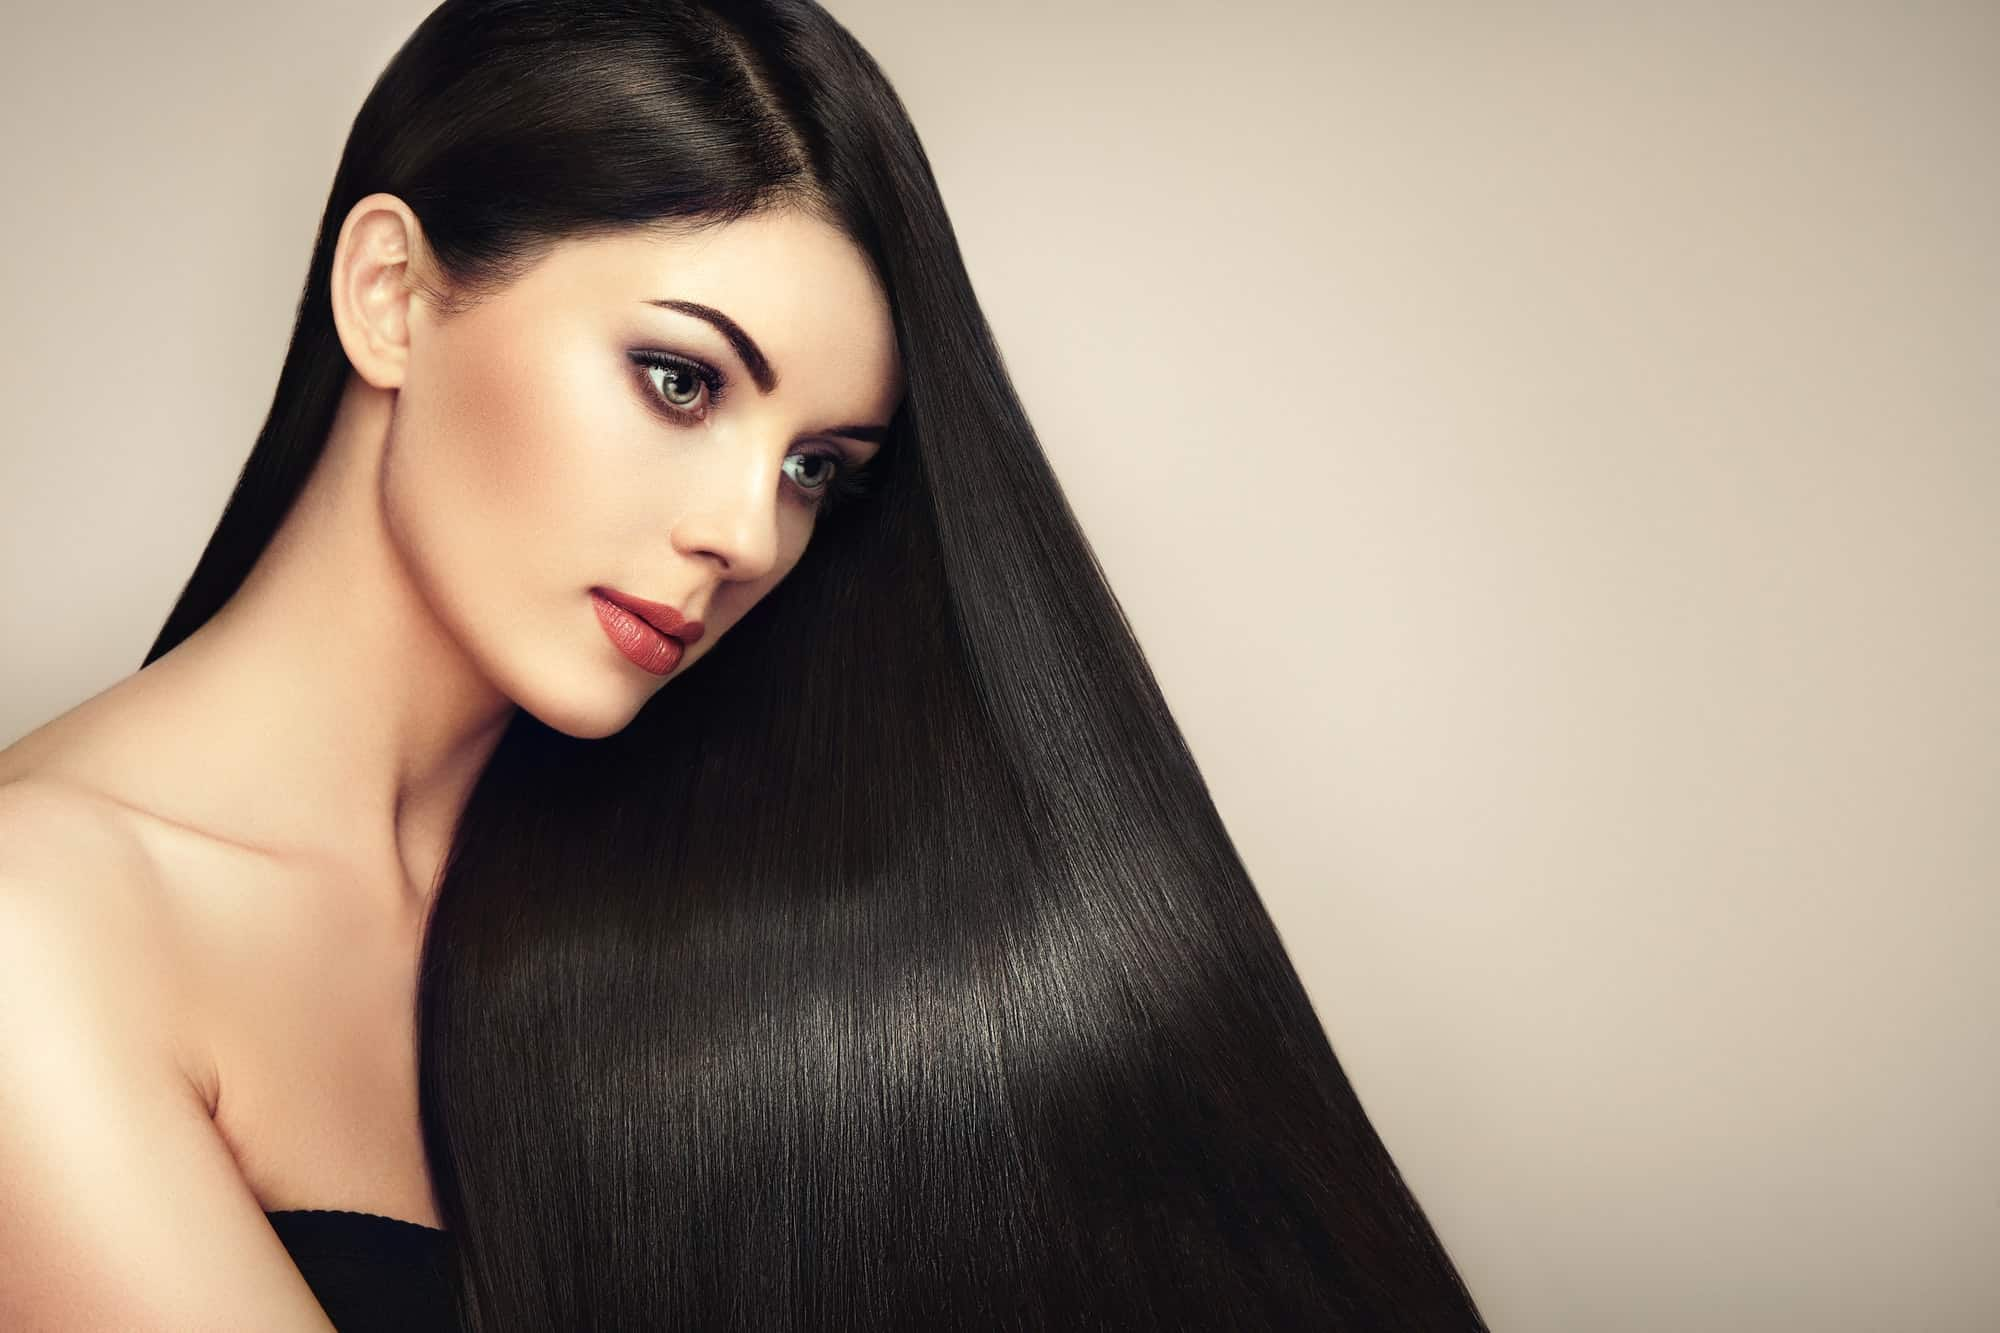 Long silky smooth hair